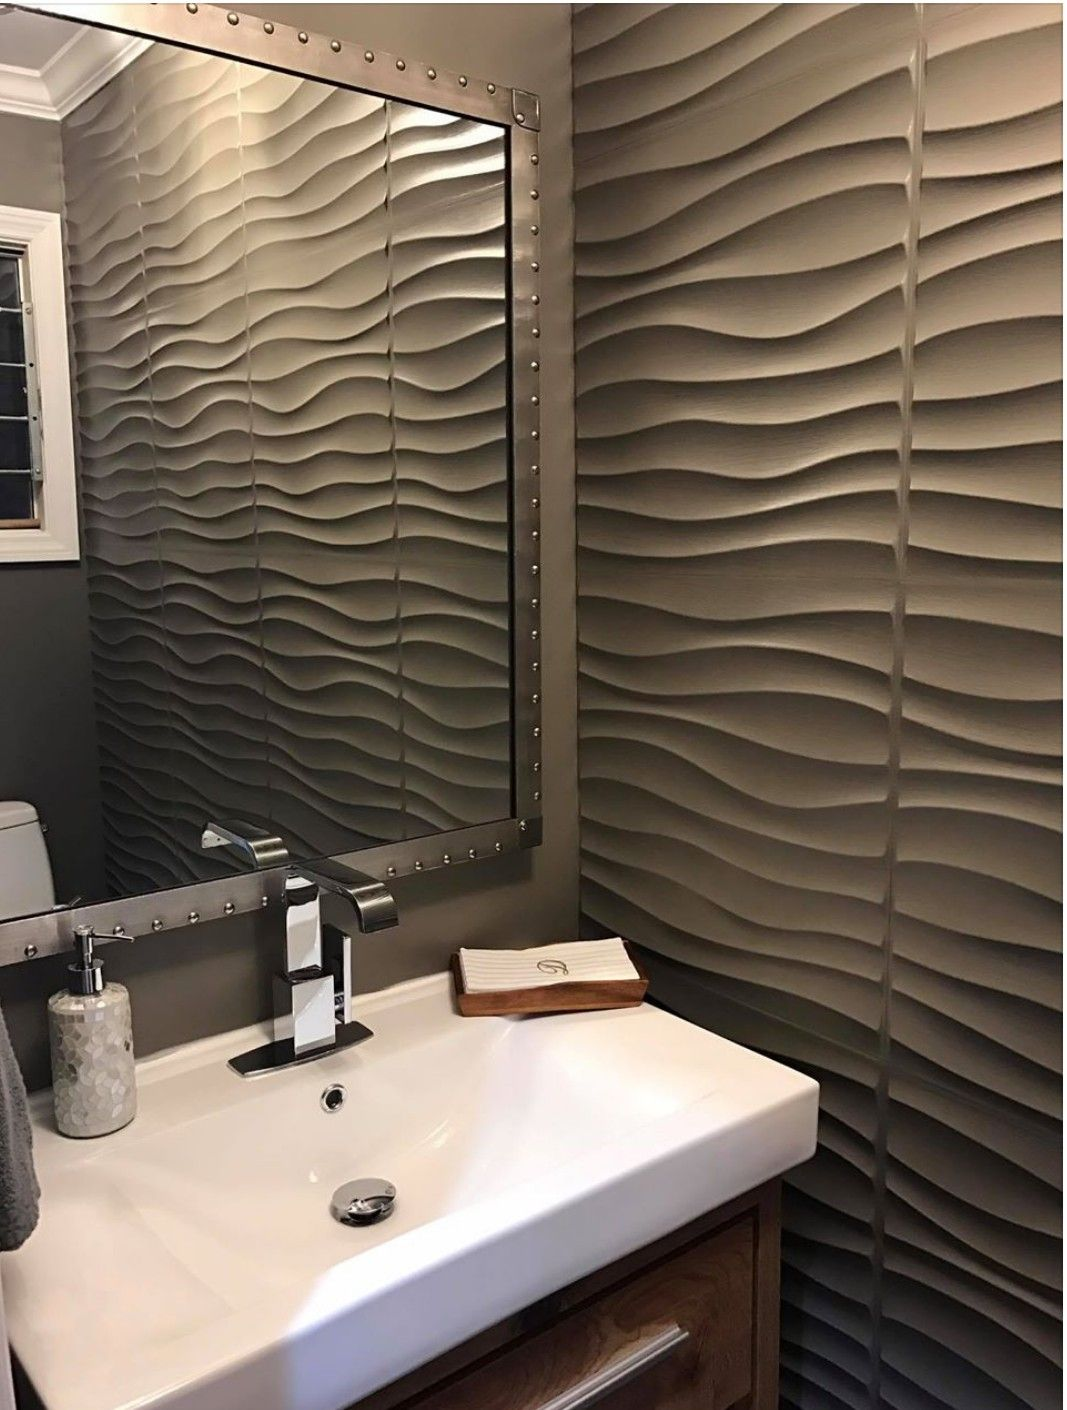 Pin by Cyd on Industrial bathrooms | Mdf wall panels, Wall ...